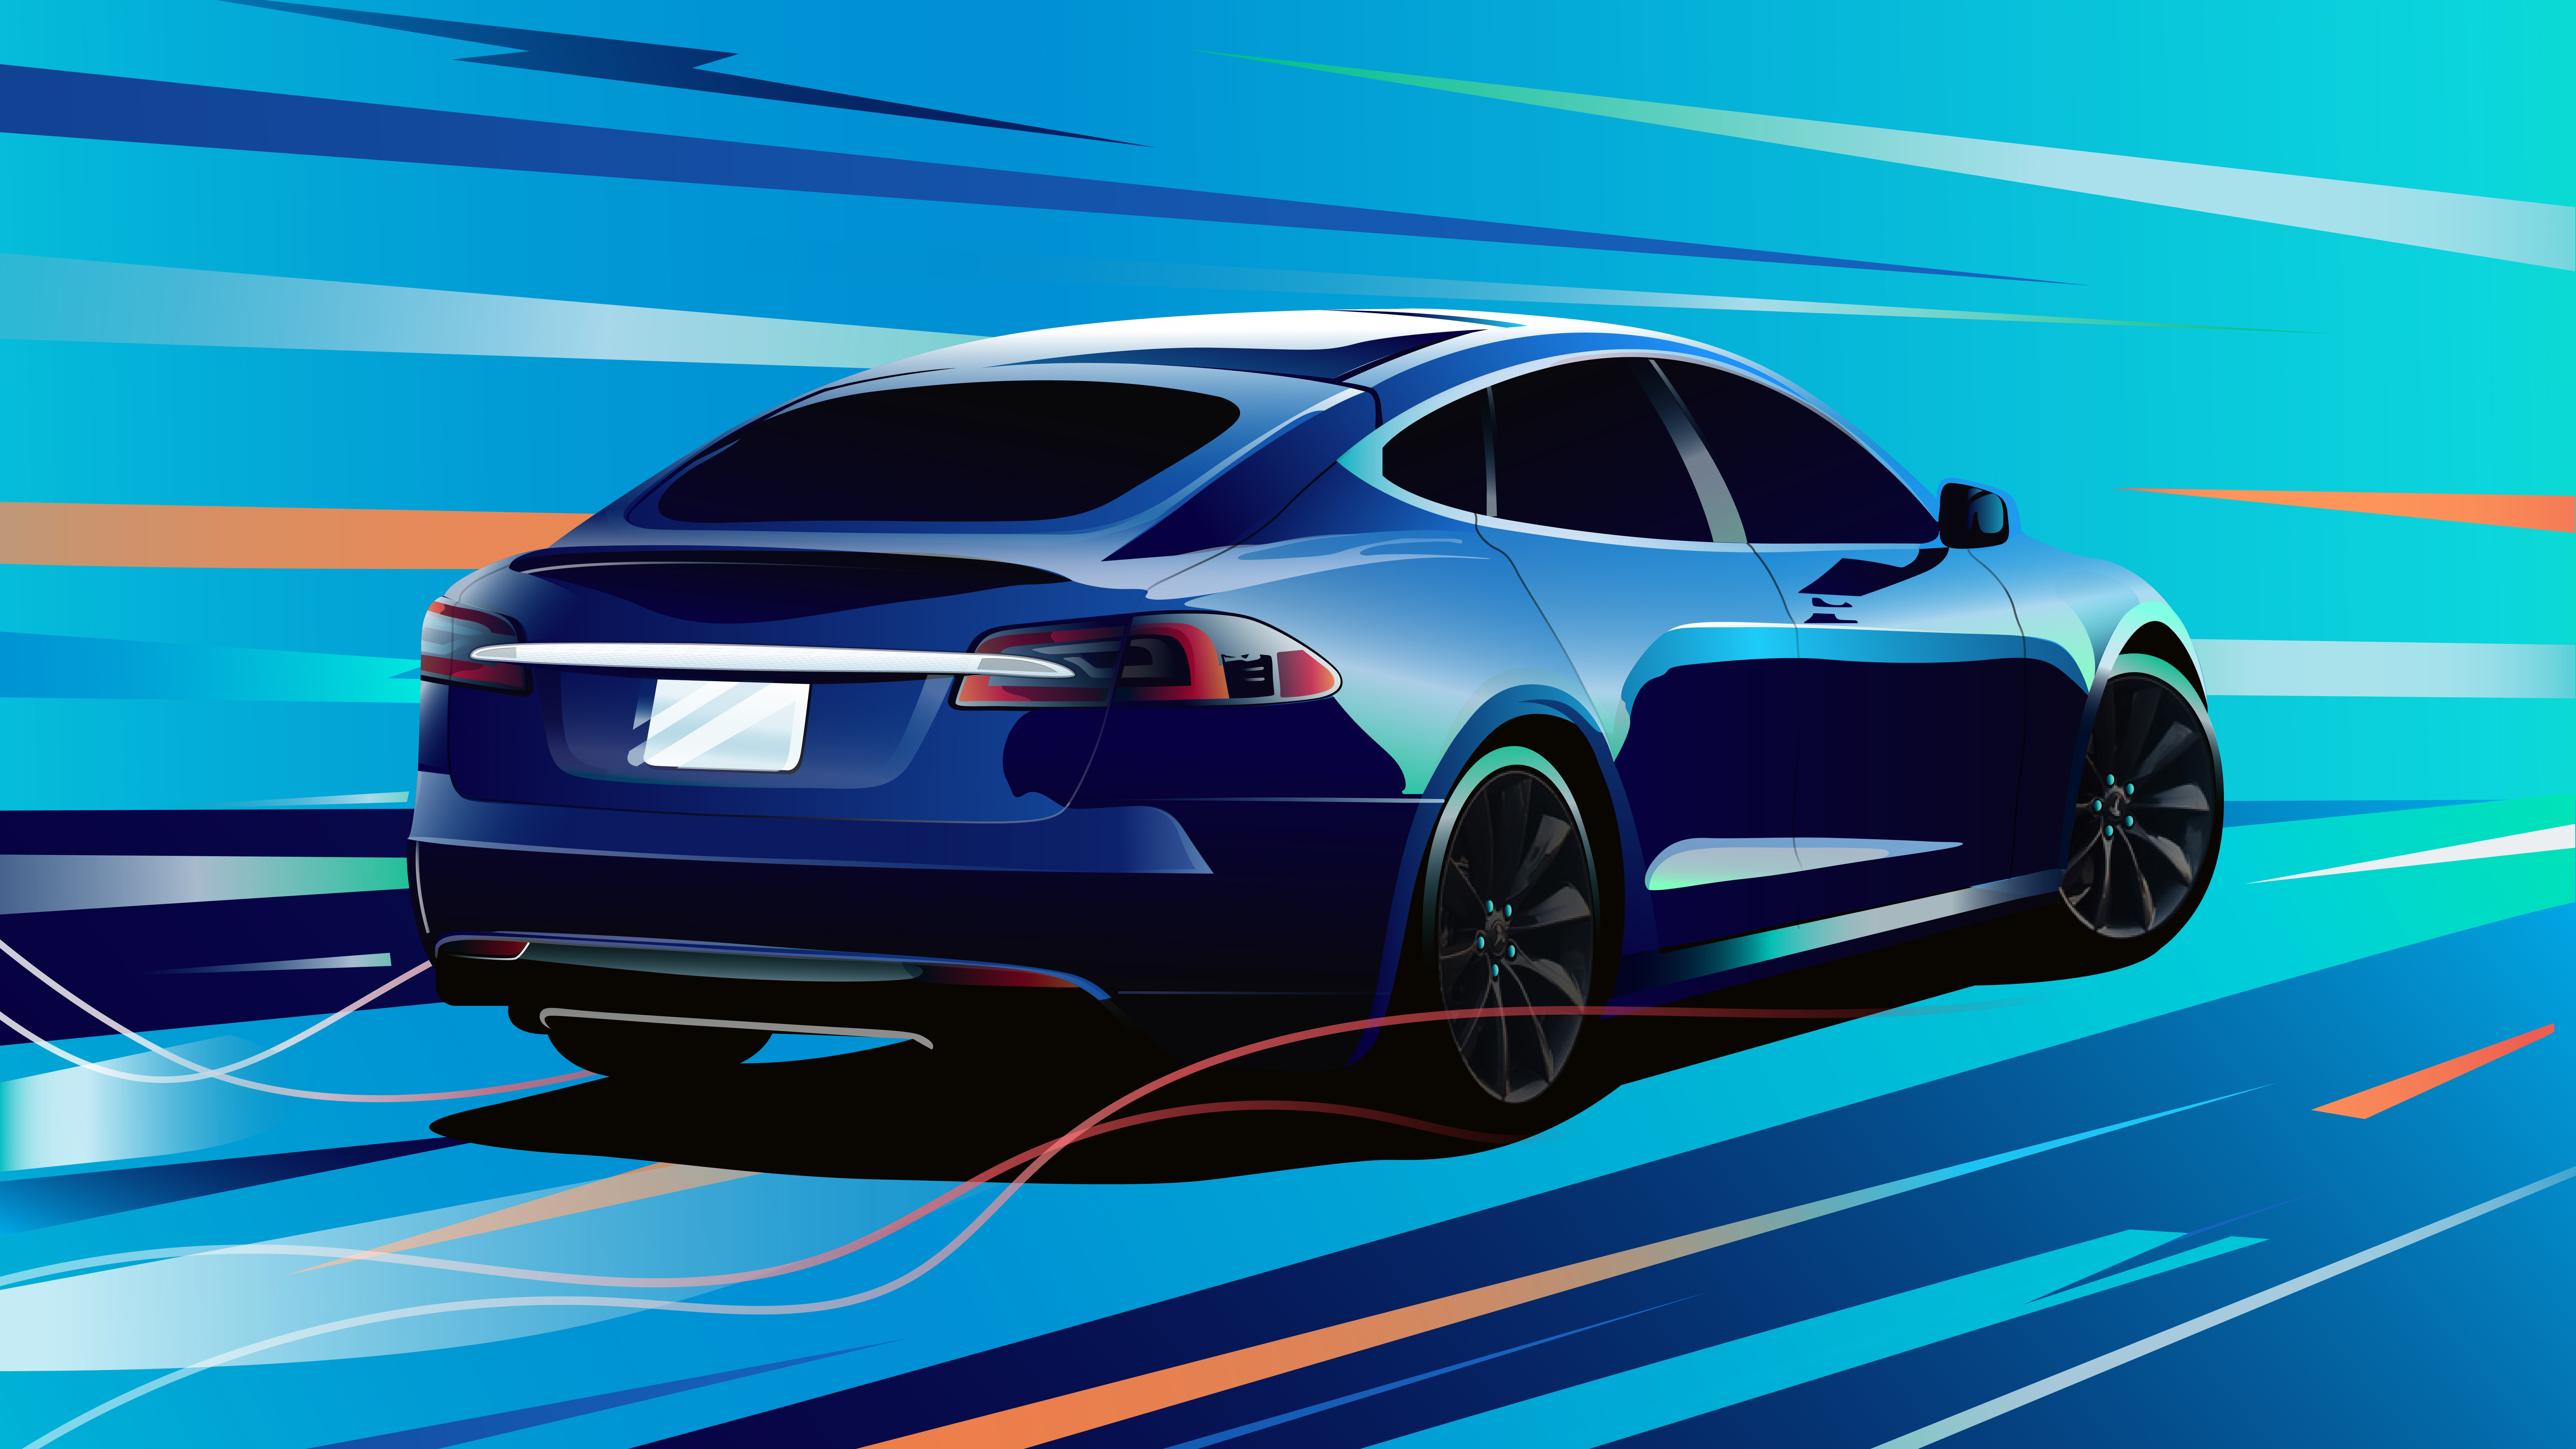 7680x4320 tesla model s 8k hd 4k wallpapers images backgrounds photos and pictures - Tesla wallpaper android ...